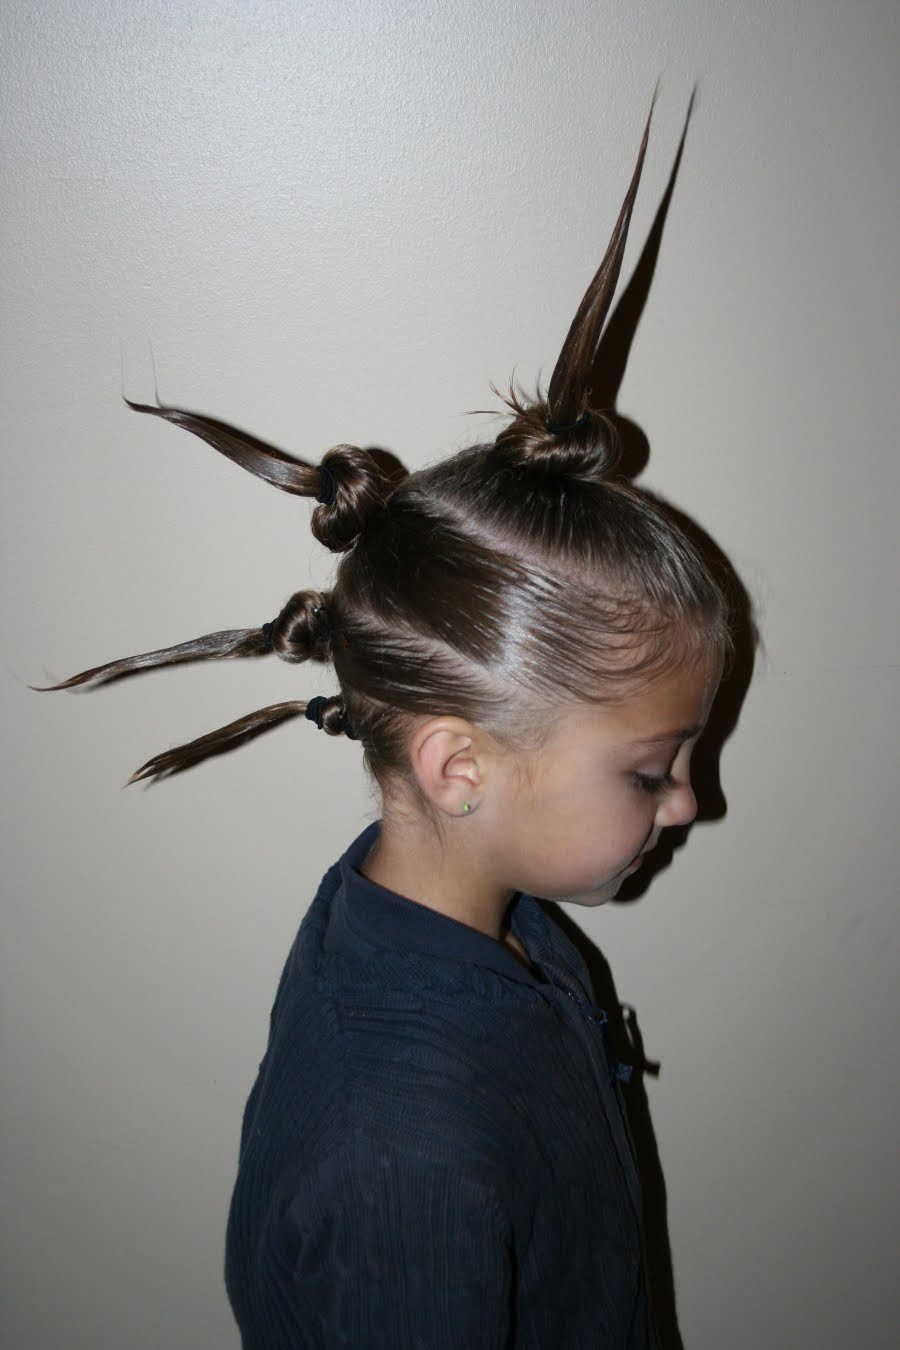 Best ideas about Crazy Girls Haircuts . Save or Pin Our Crazy Hair Day… Now.